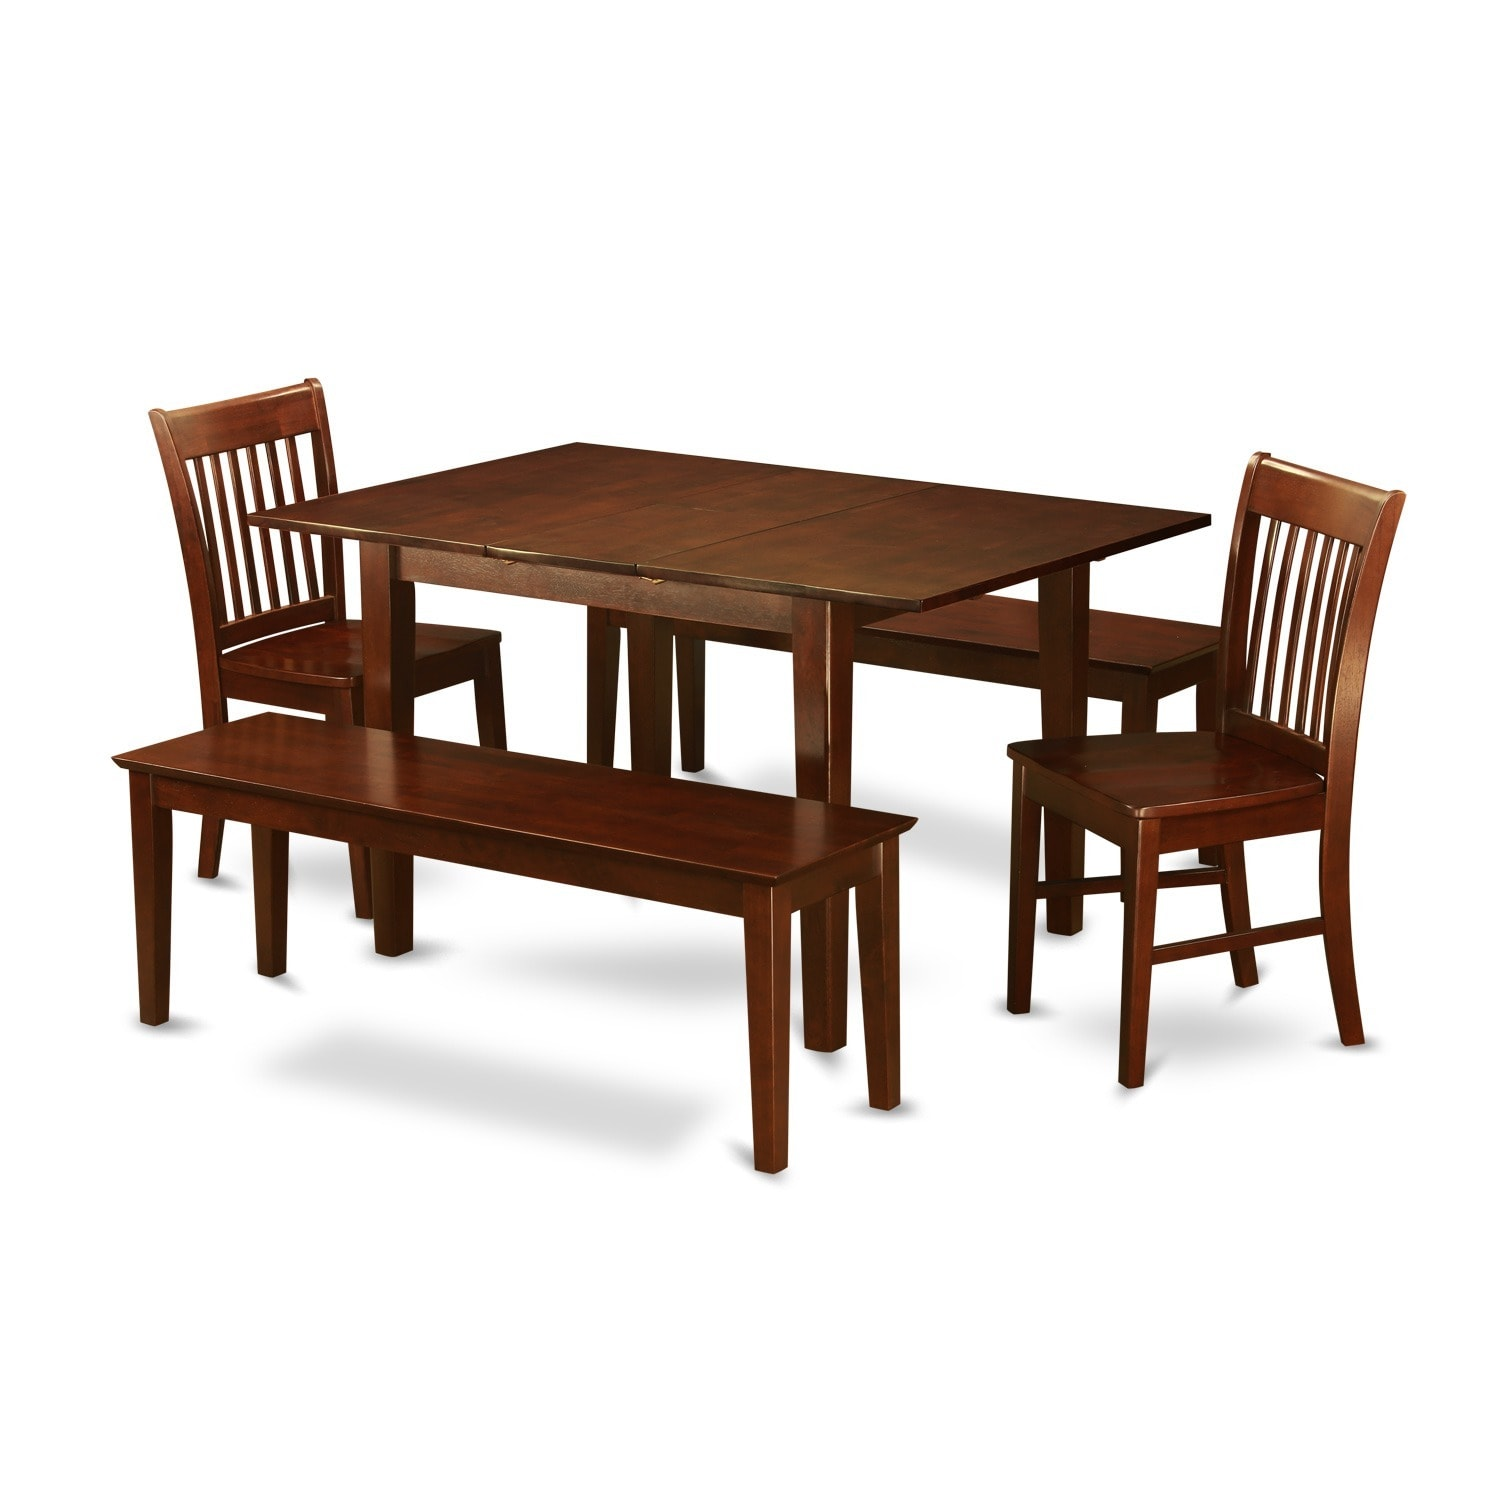 Brown Rubberwood 5-piece Dining Table Set with Dining Ben...